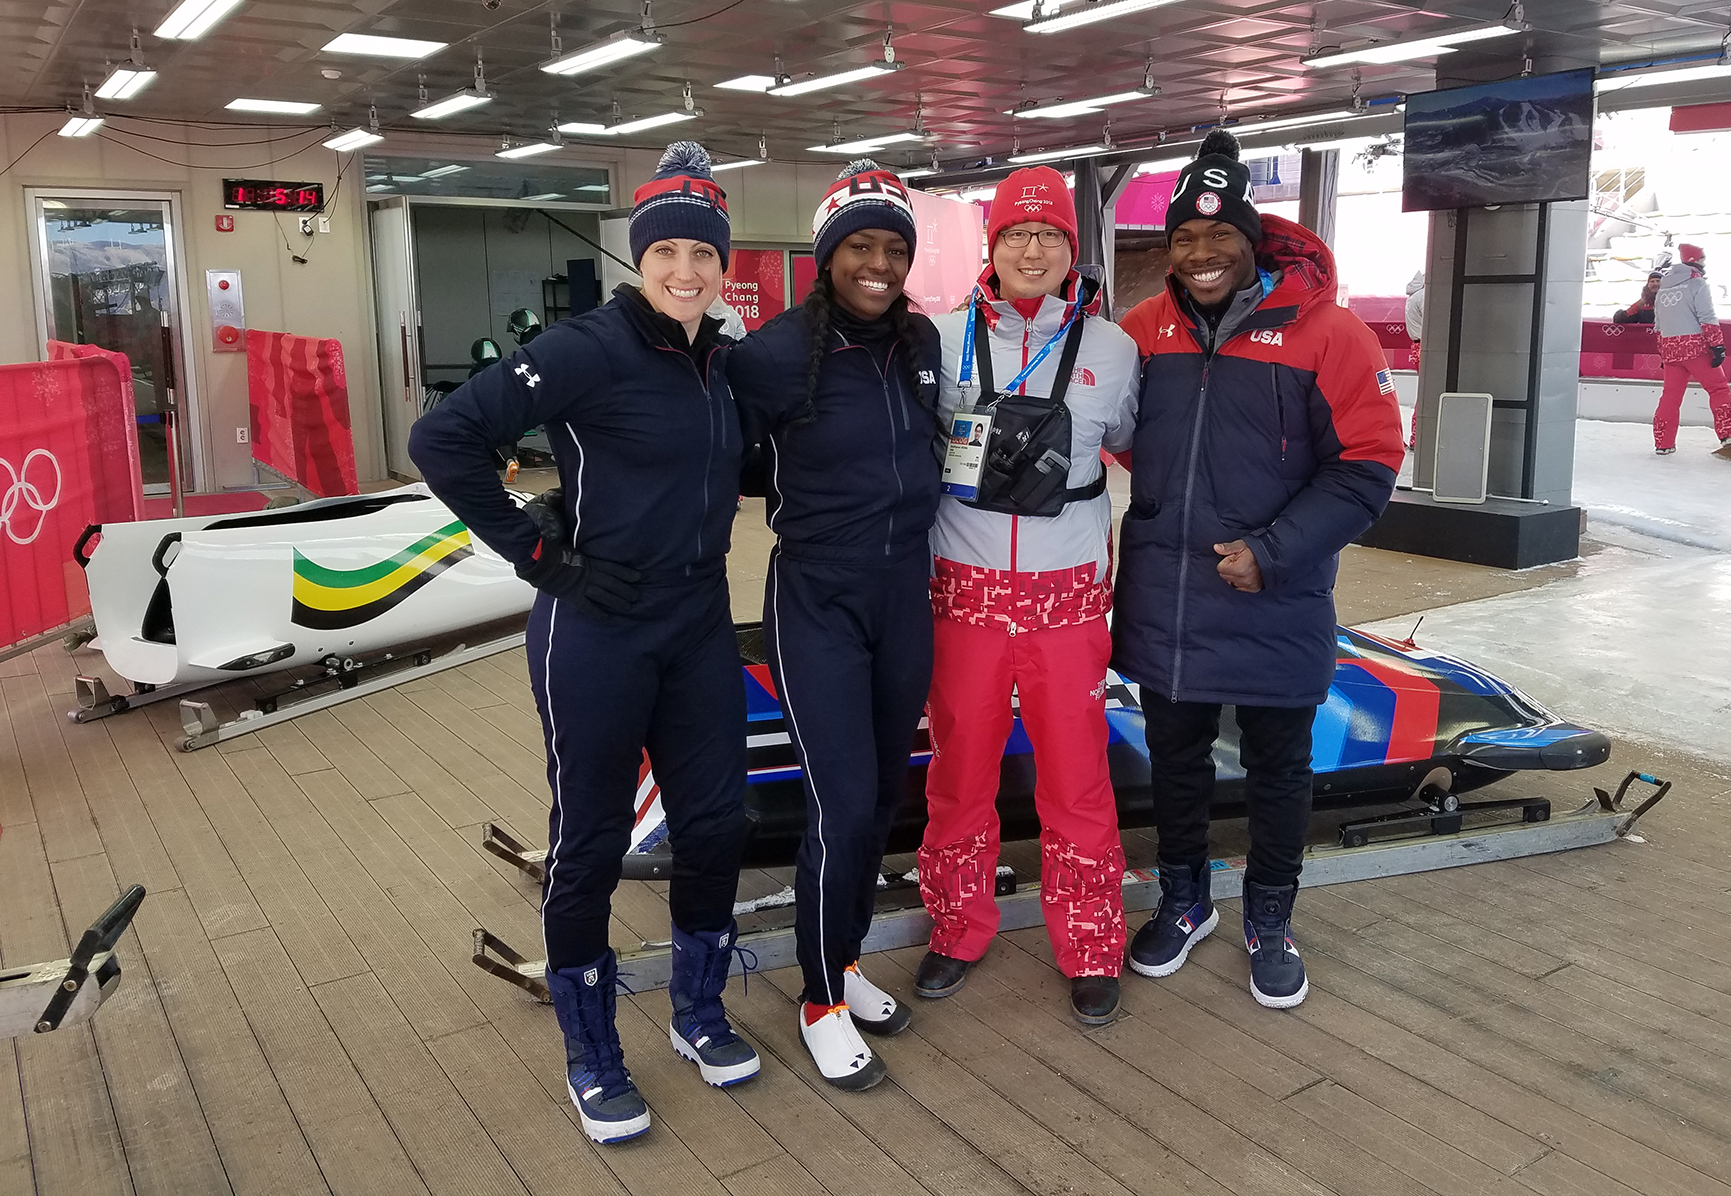 US womens bobsled